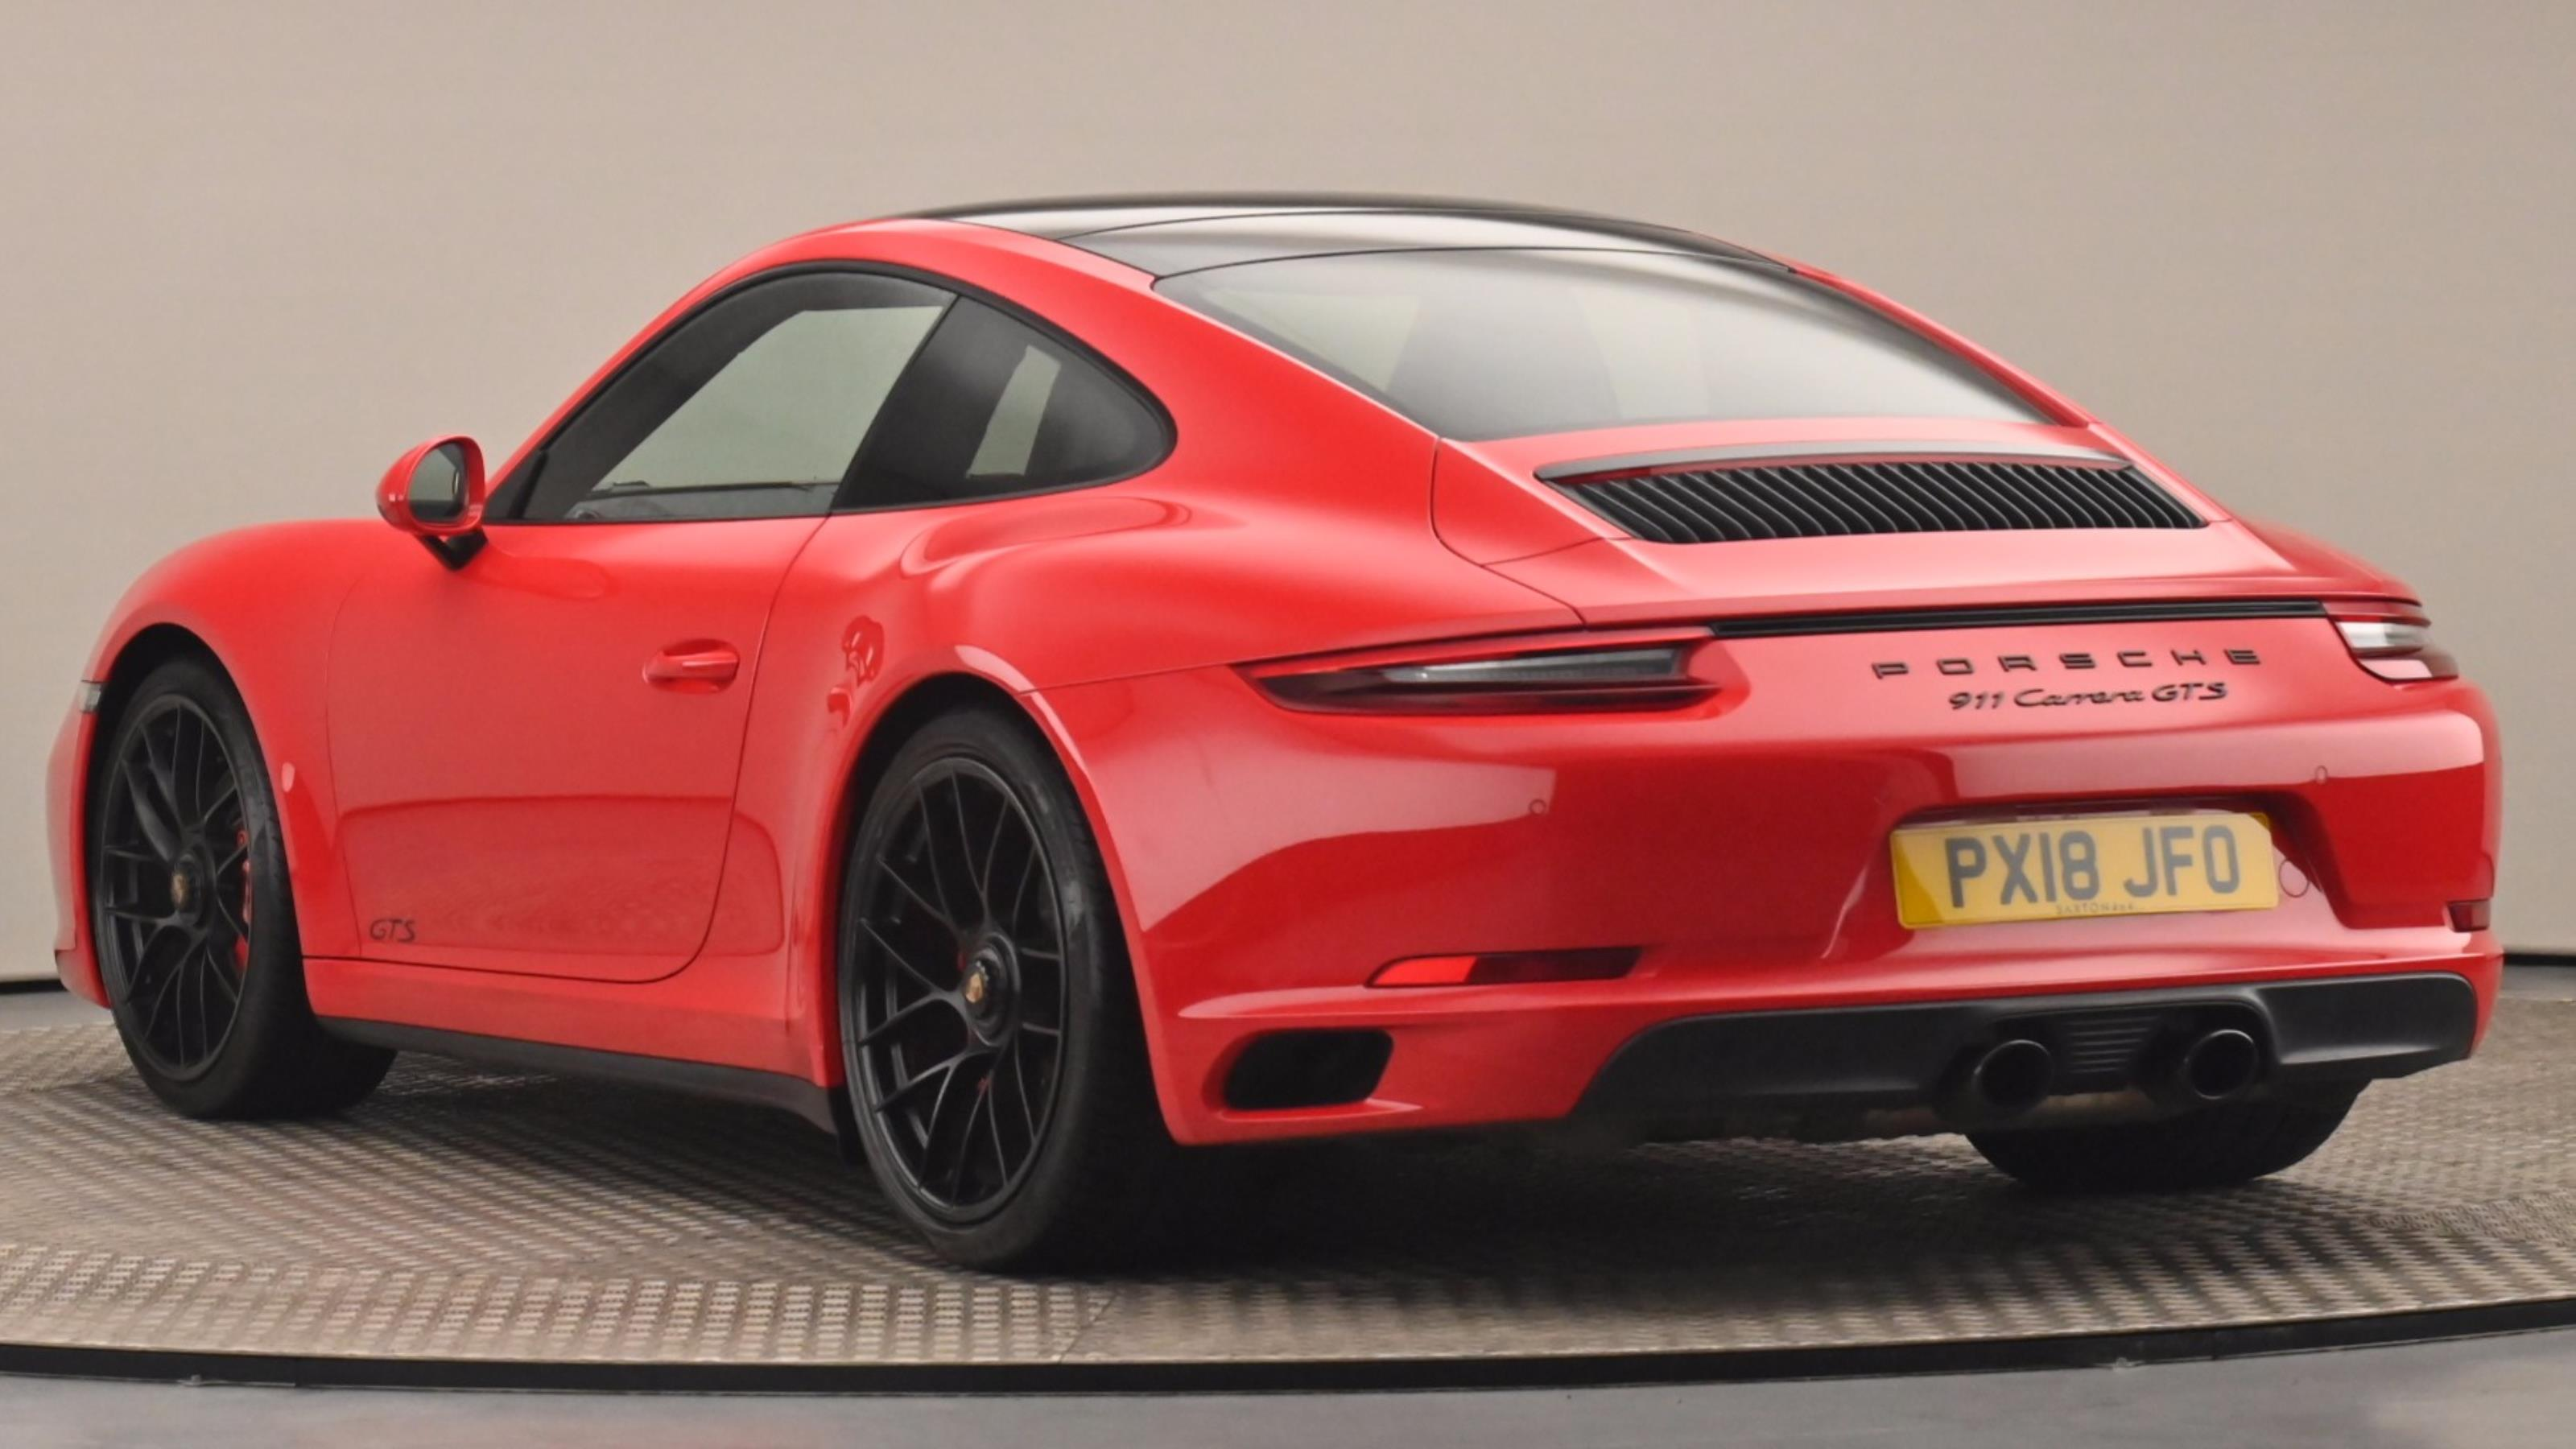 Used 2018 Porsche 911 GTS 2dr PDK RED at Saxton4x4